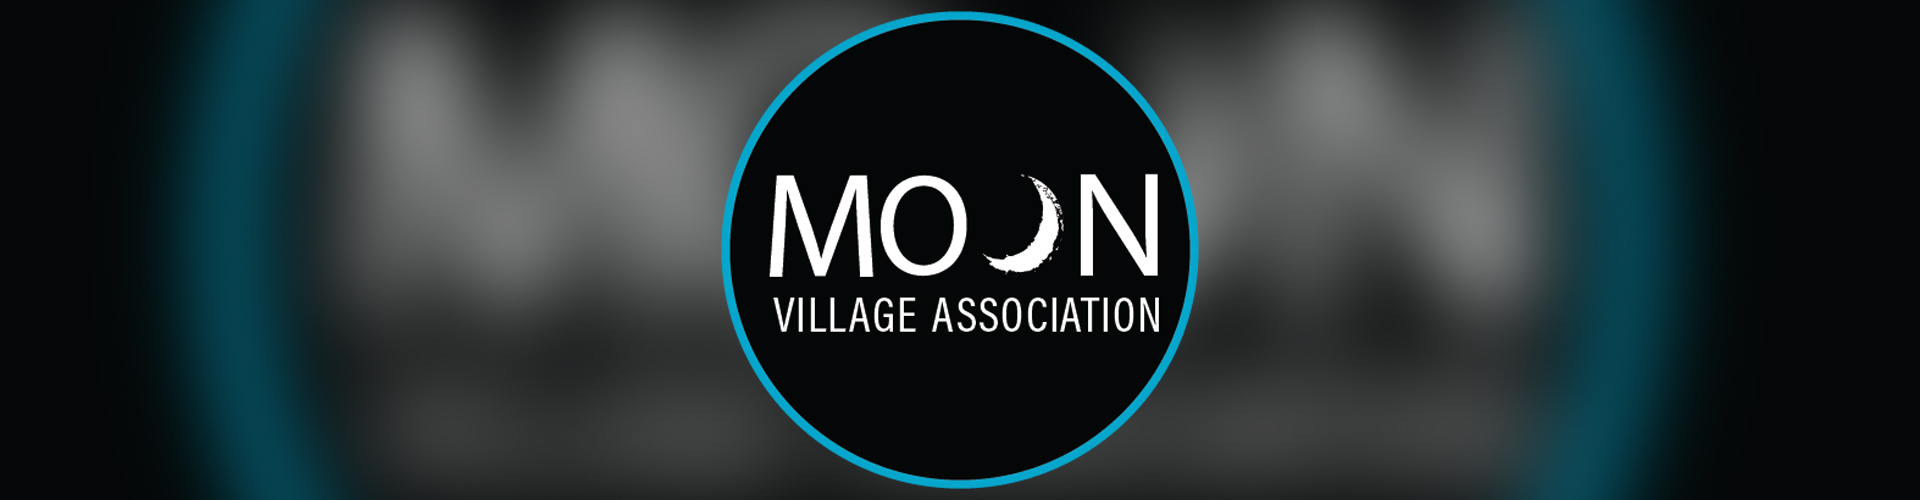 The 3rd International Moon Village Workshop & Symposium, 2019